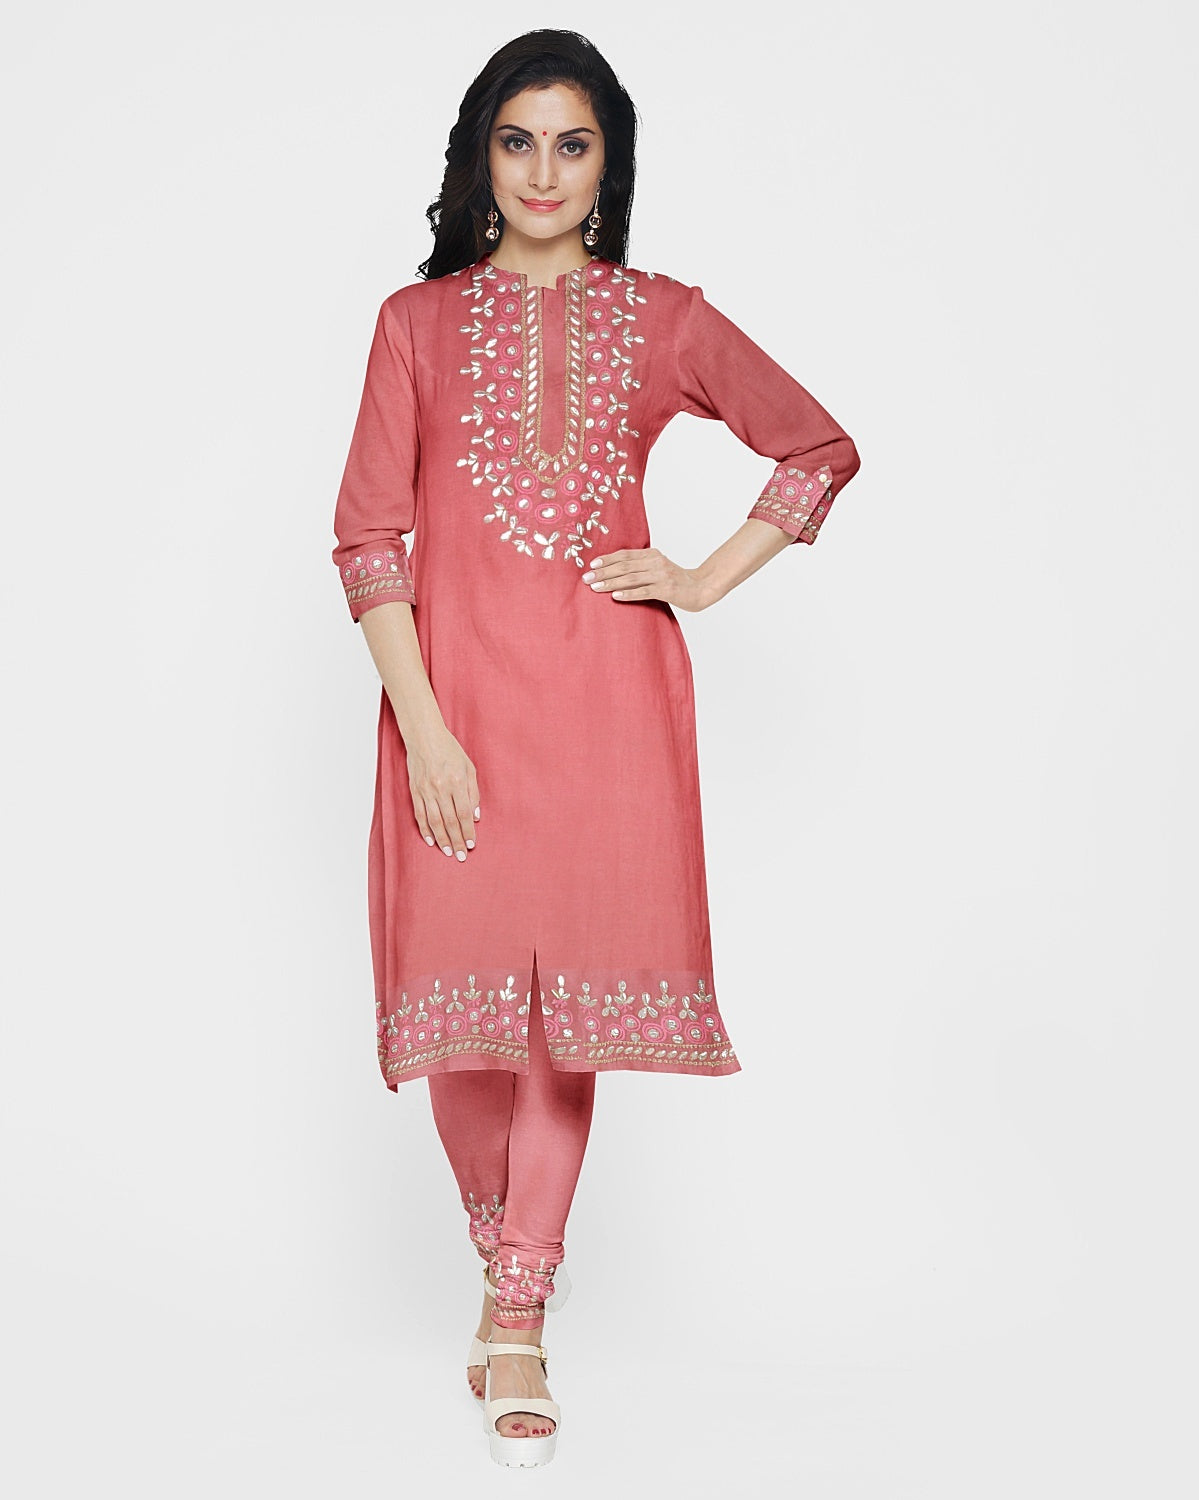 Rose Pink Gota Patti Suit Fabric Set